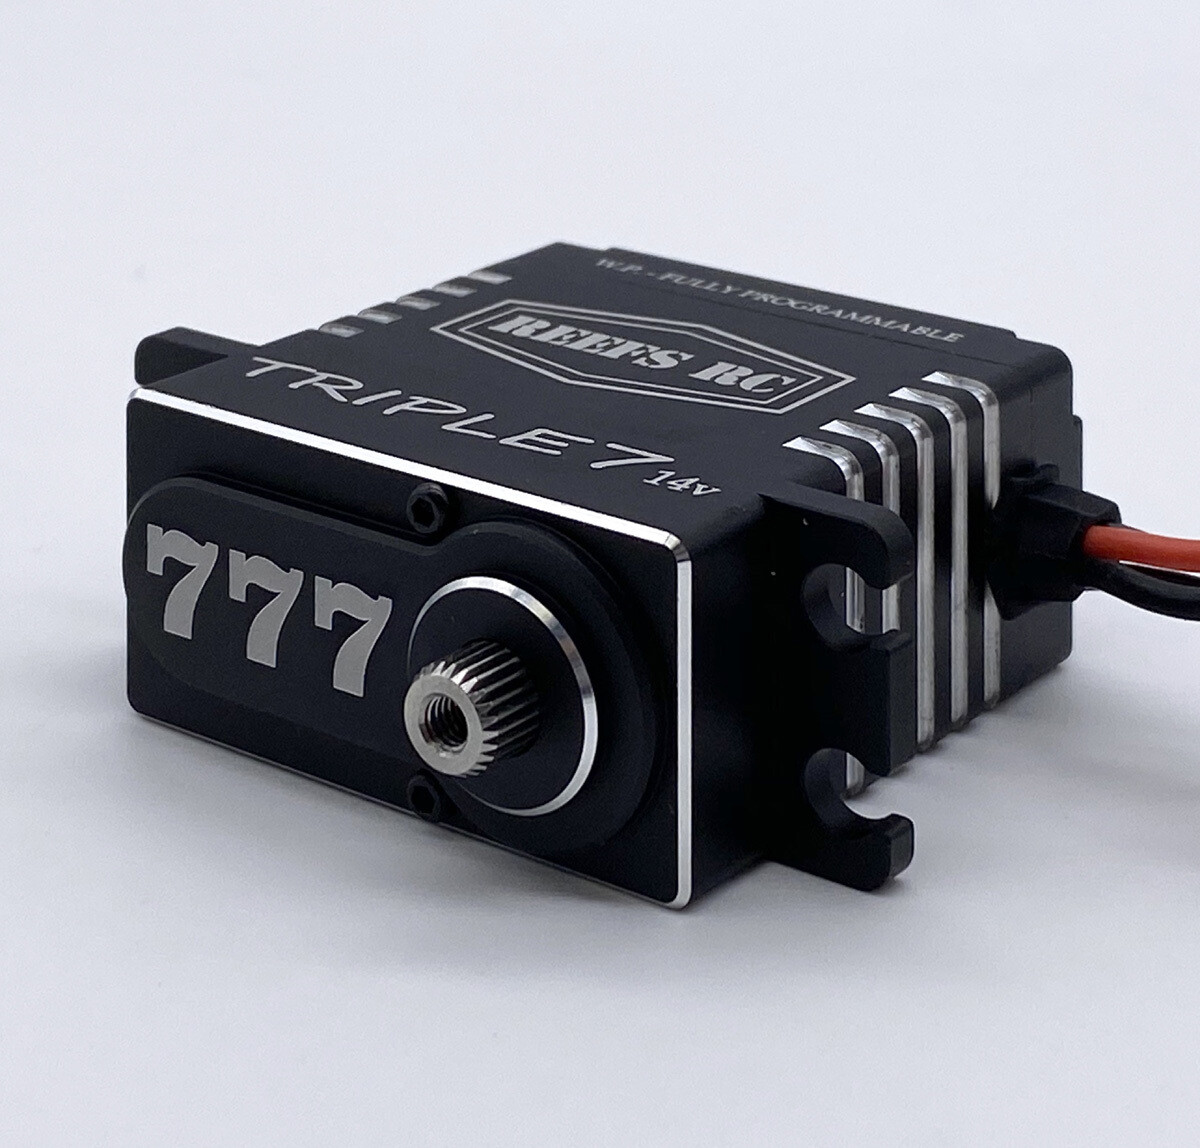 Reefs R/C Triple7 14V High Torque High Speed Brushless Programmable Servo